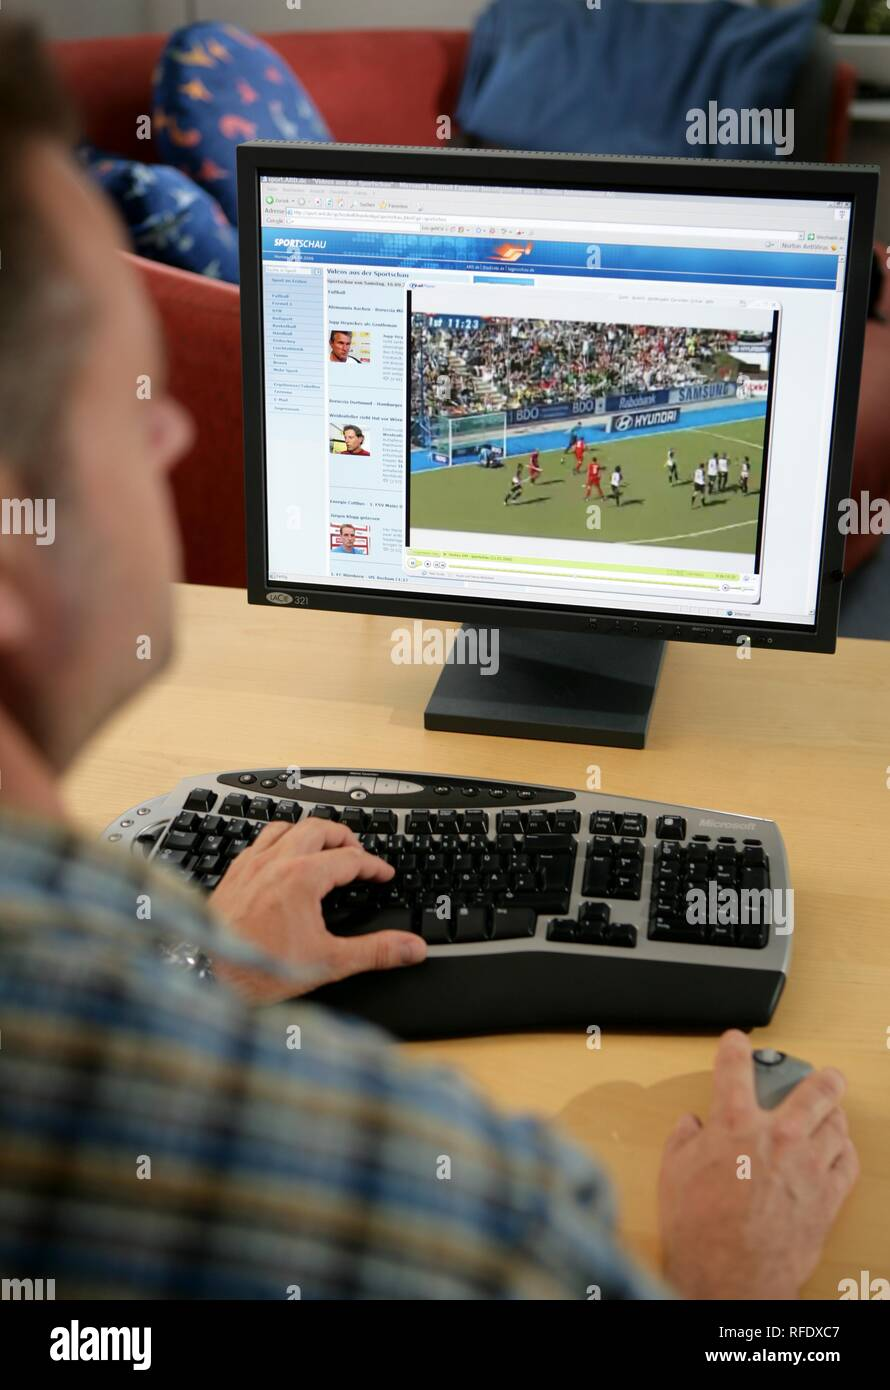 DEU, Germany : Man is sitting at a computer, surfing the internet. German TV ARD, livestream TV, sport news. | - Stock Image